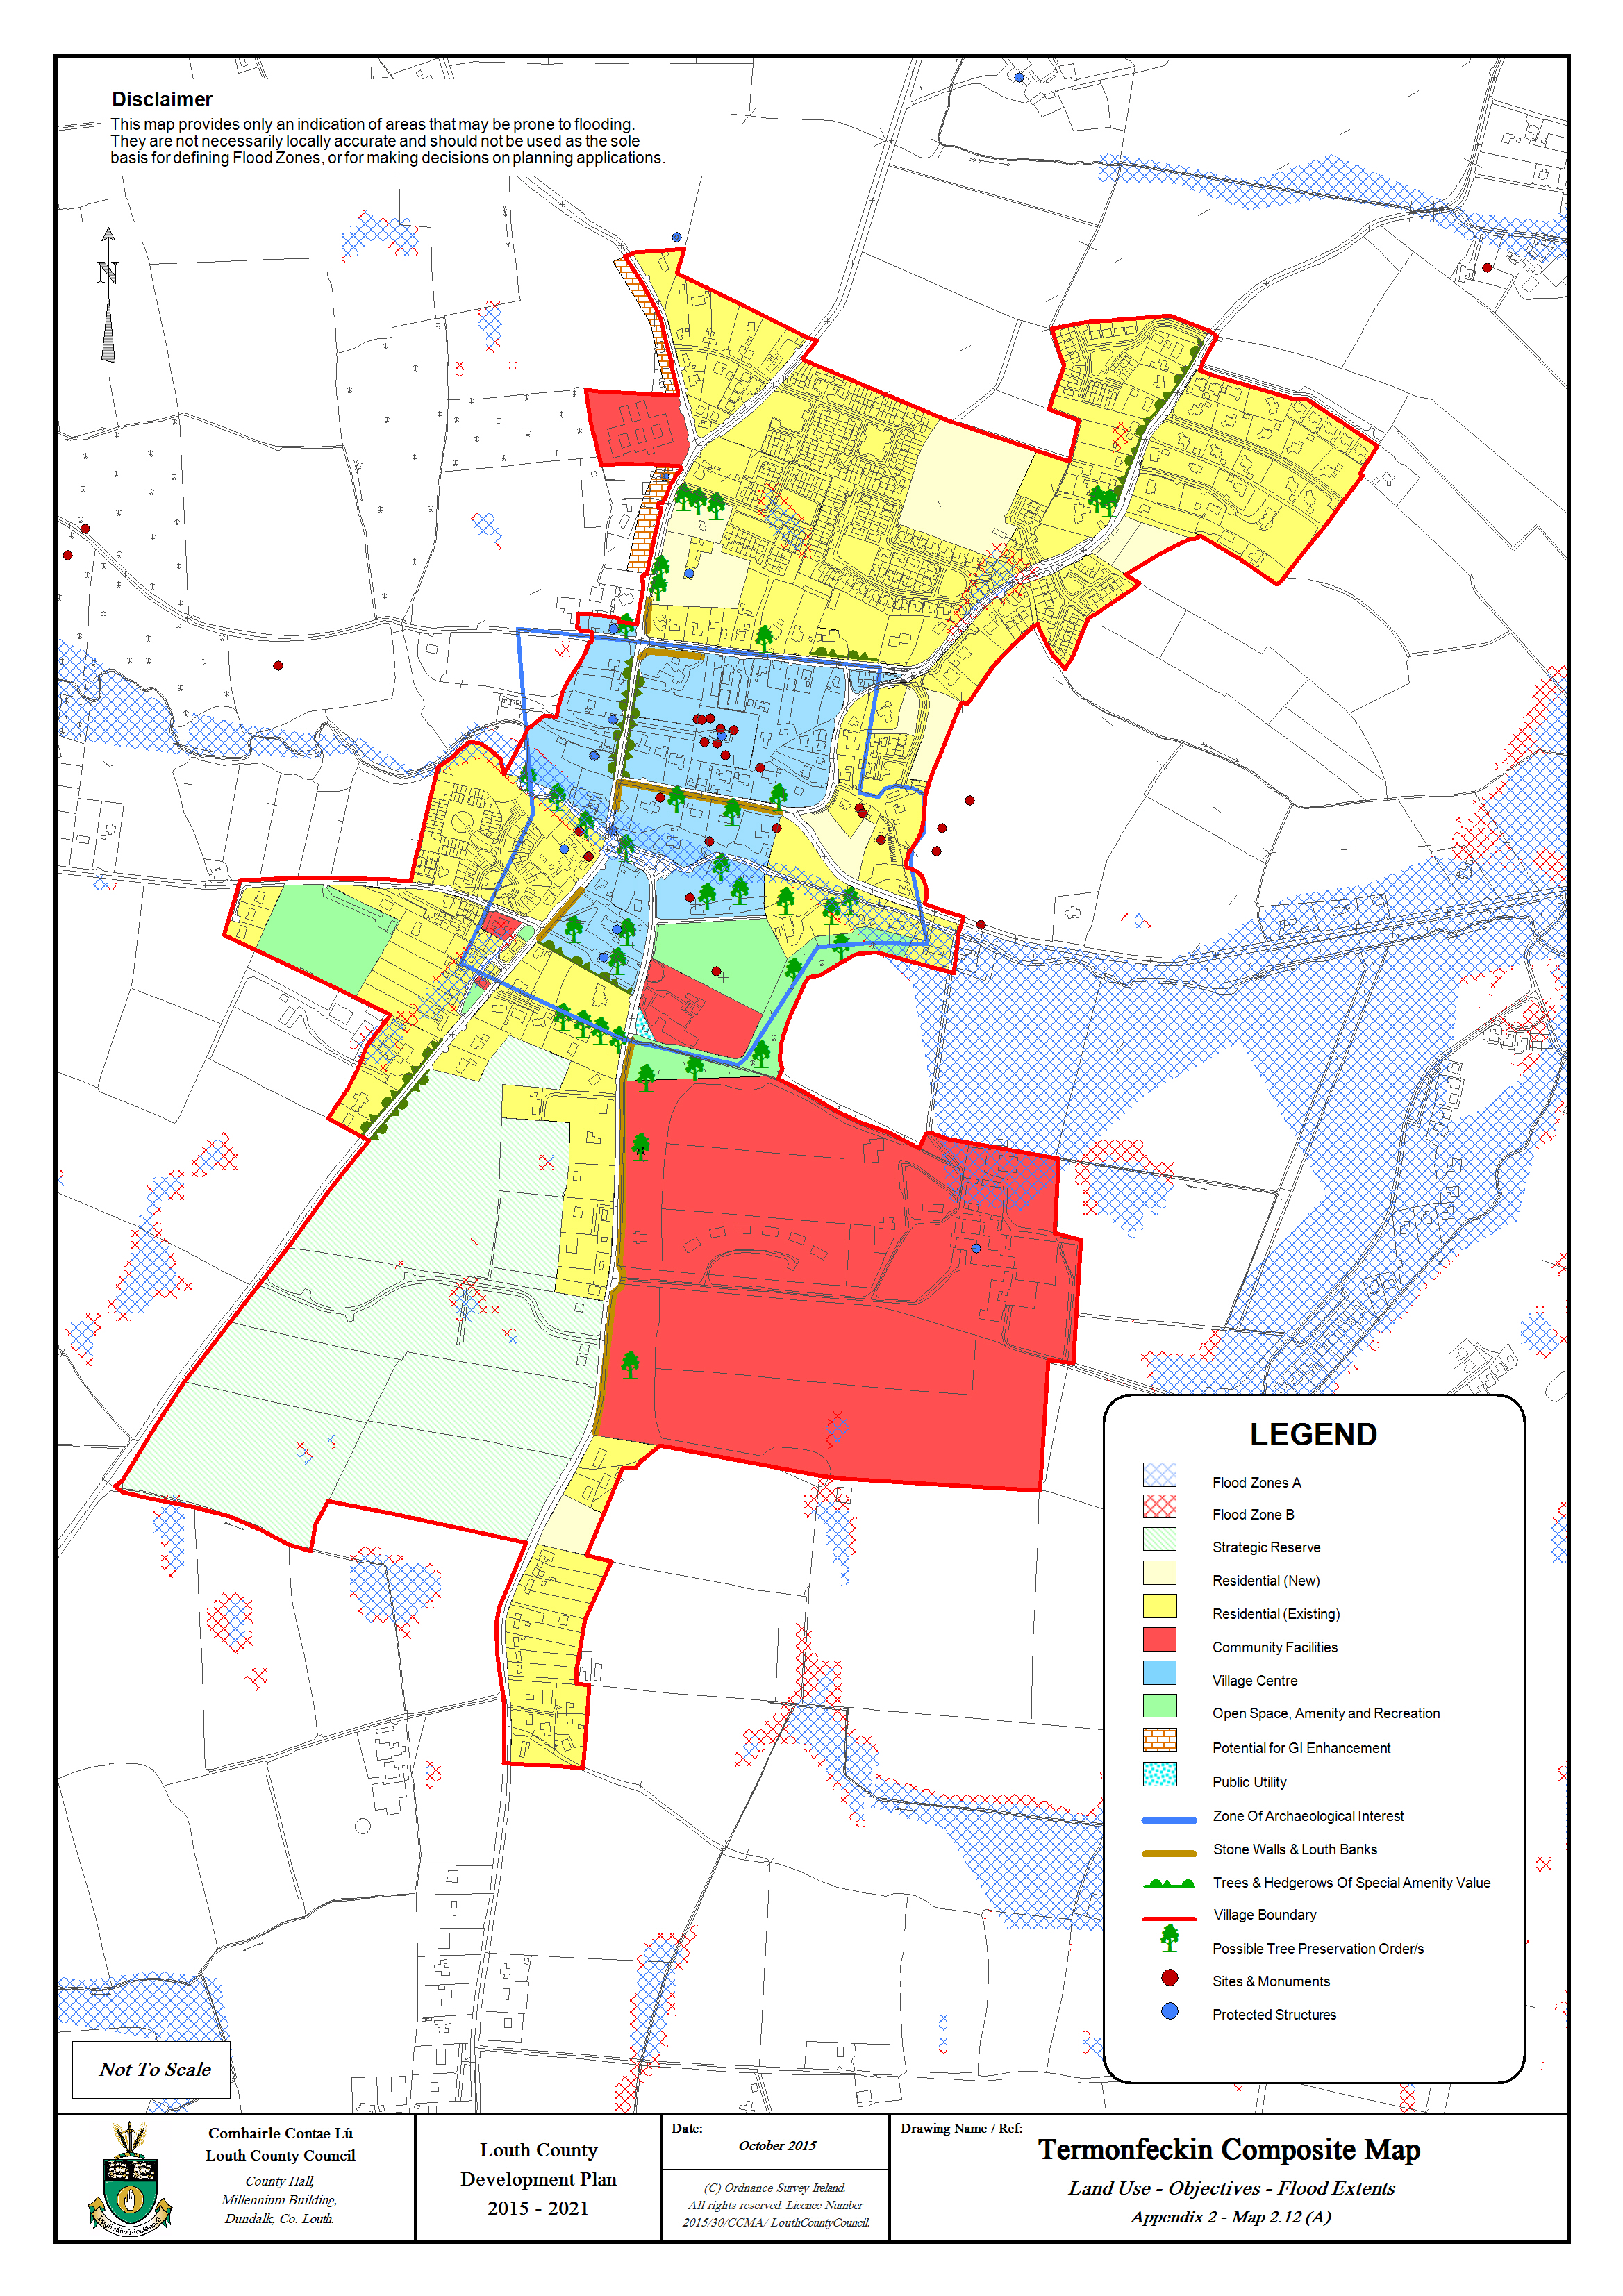 Councils maps boundaries in dating